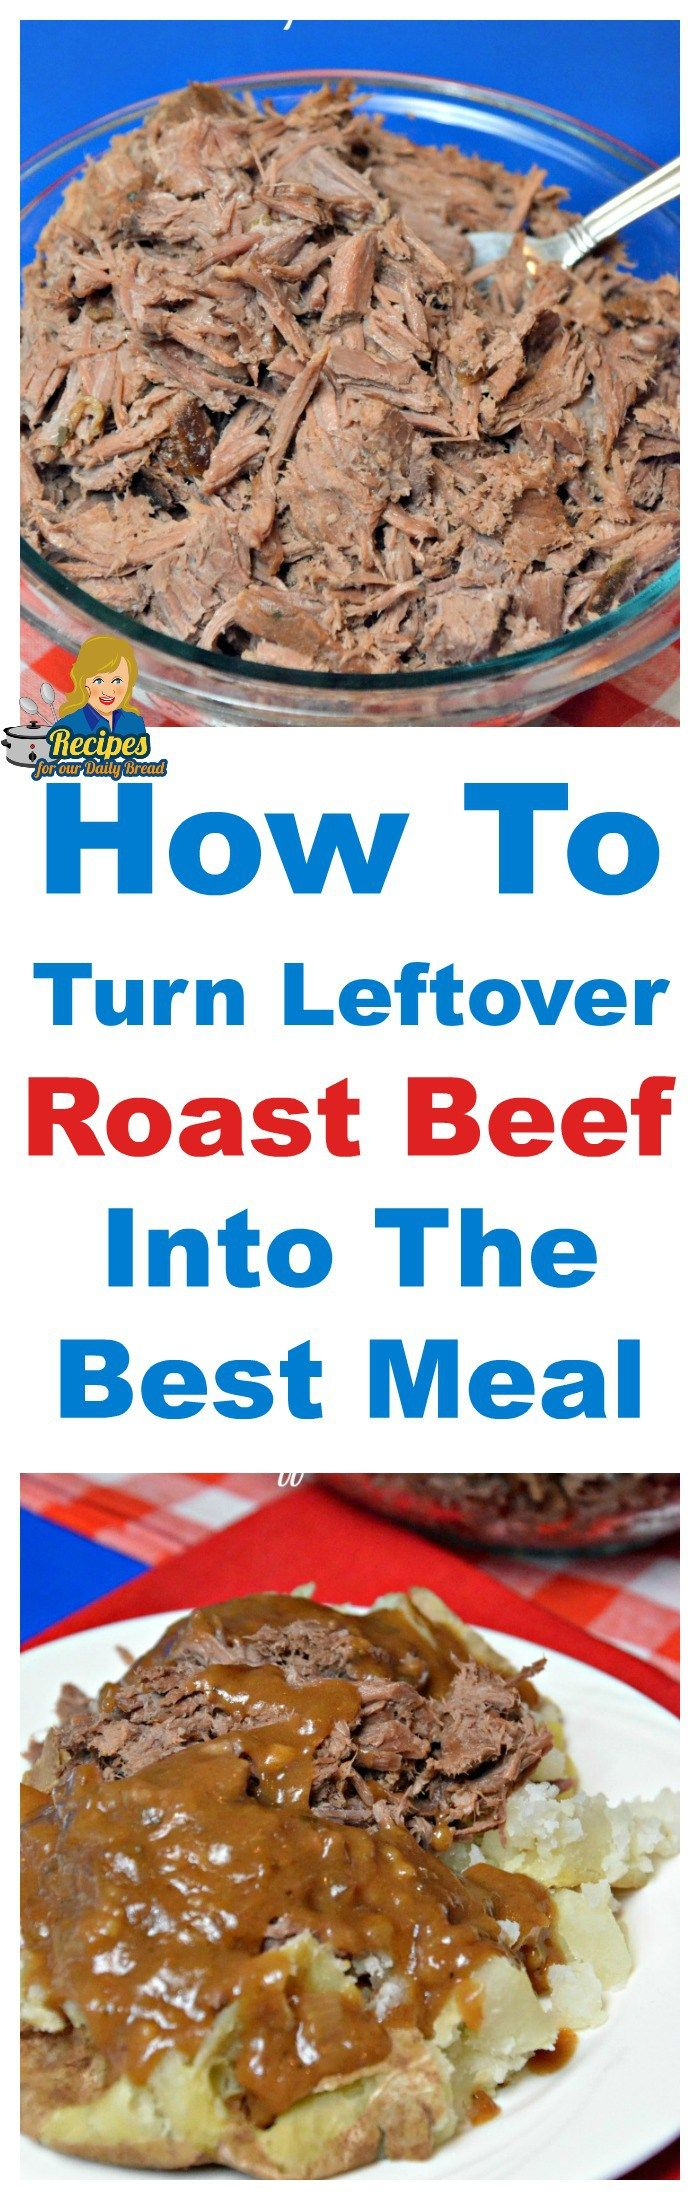 HOW TO TURN LEFTOVER ROAST BEEF INTO THE THE BEST MEAL  PRINT RECIPE HERE: http://recipesforourdailybread.com/leftover-roast-beef/